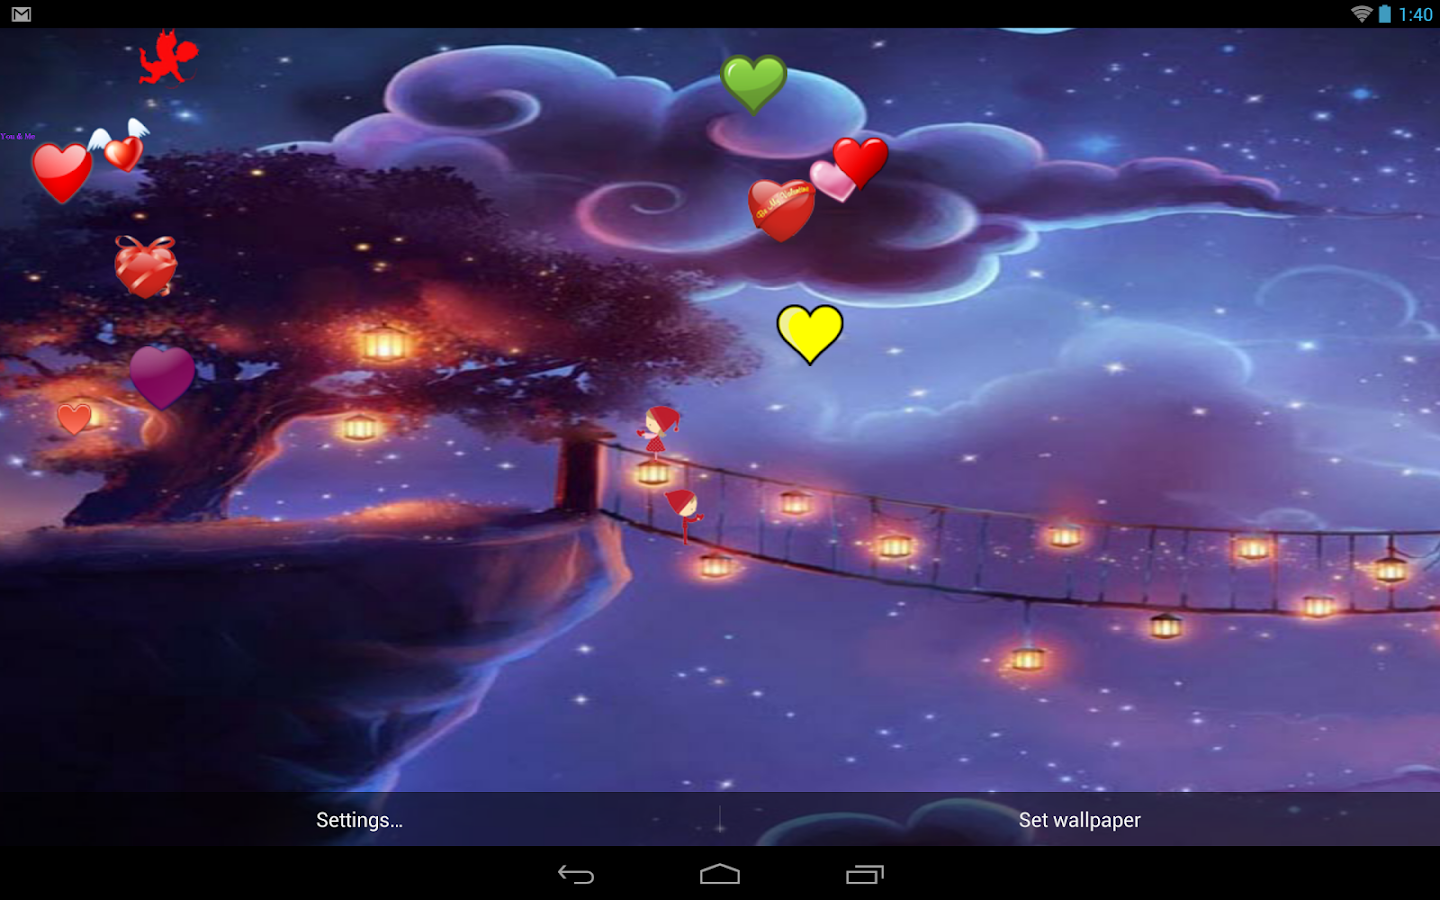 valentine live wallpaper free screenshot - Live Valentine Wallpaper